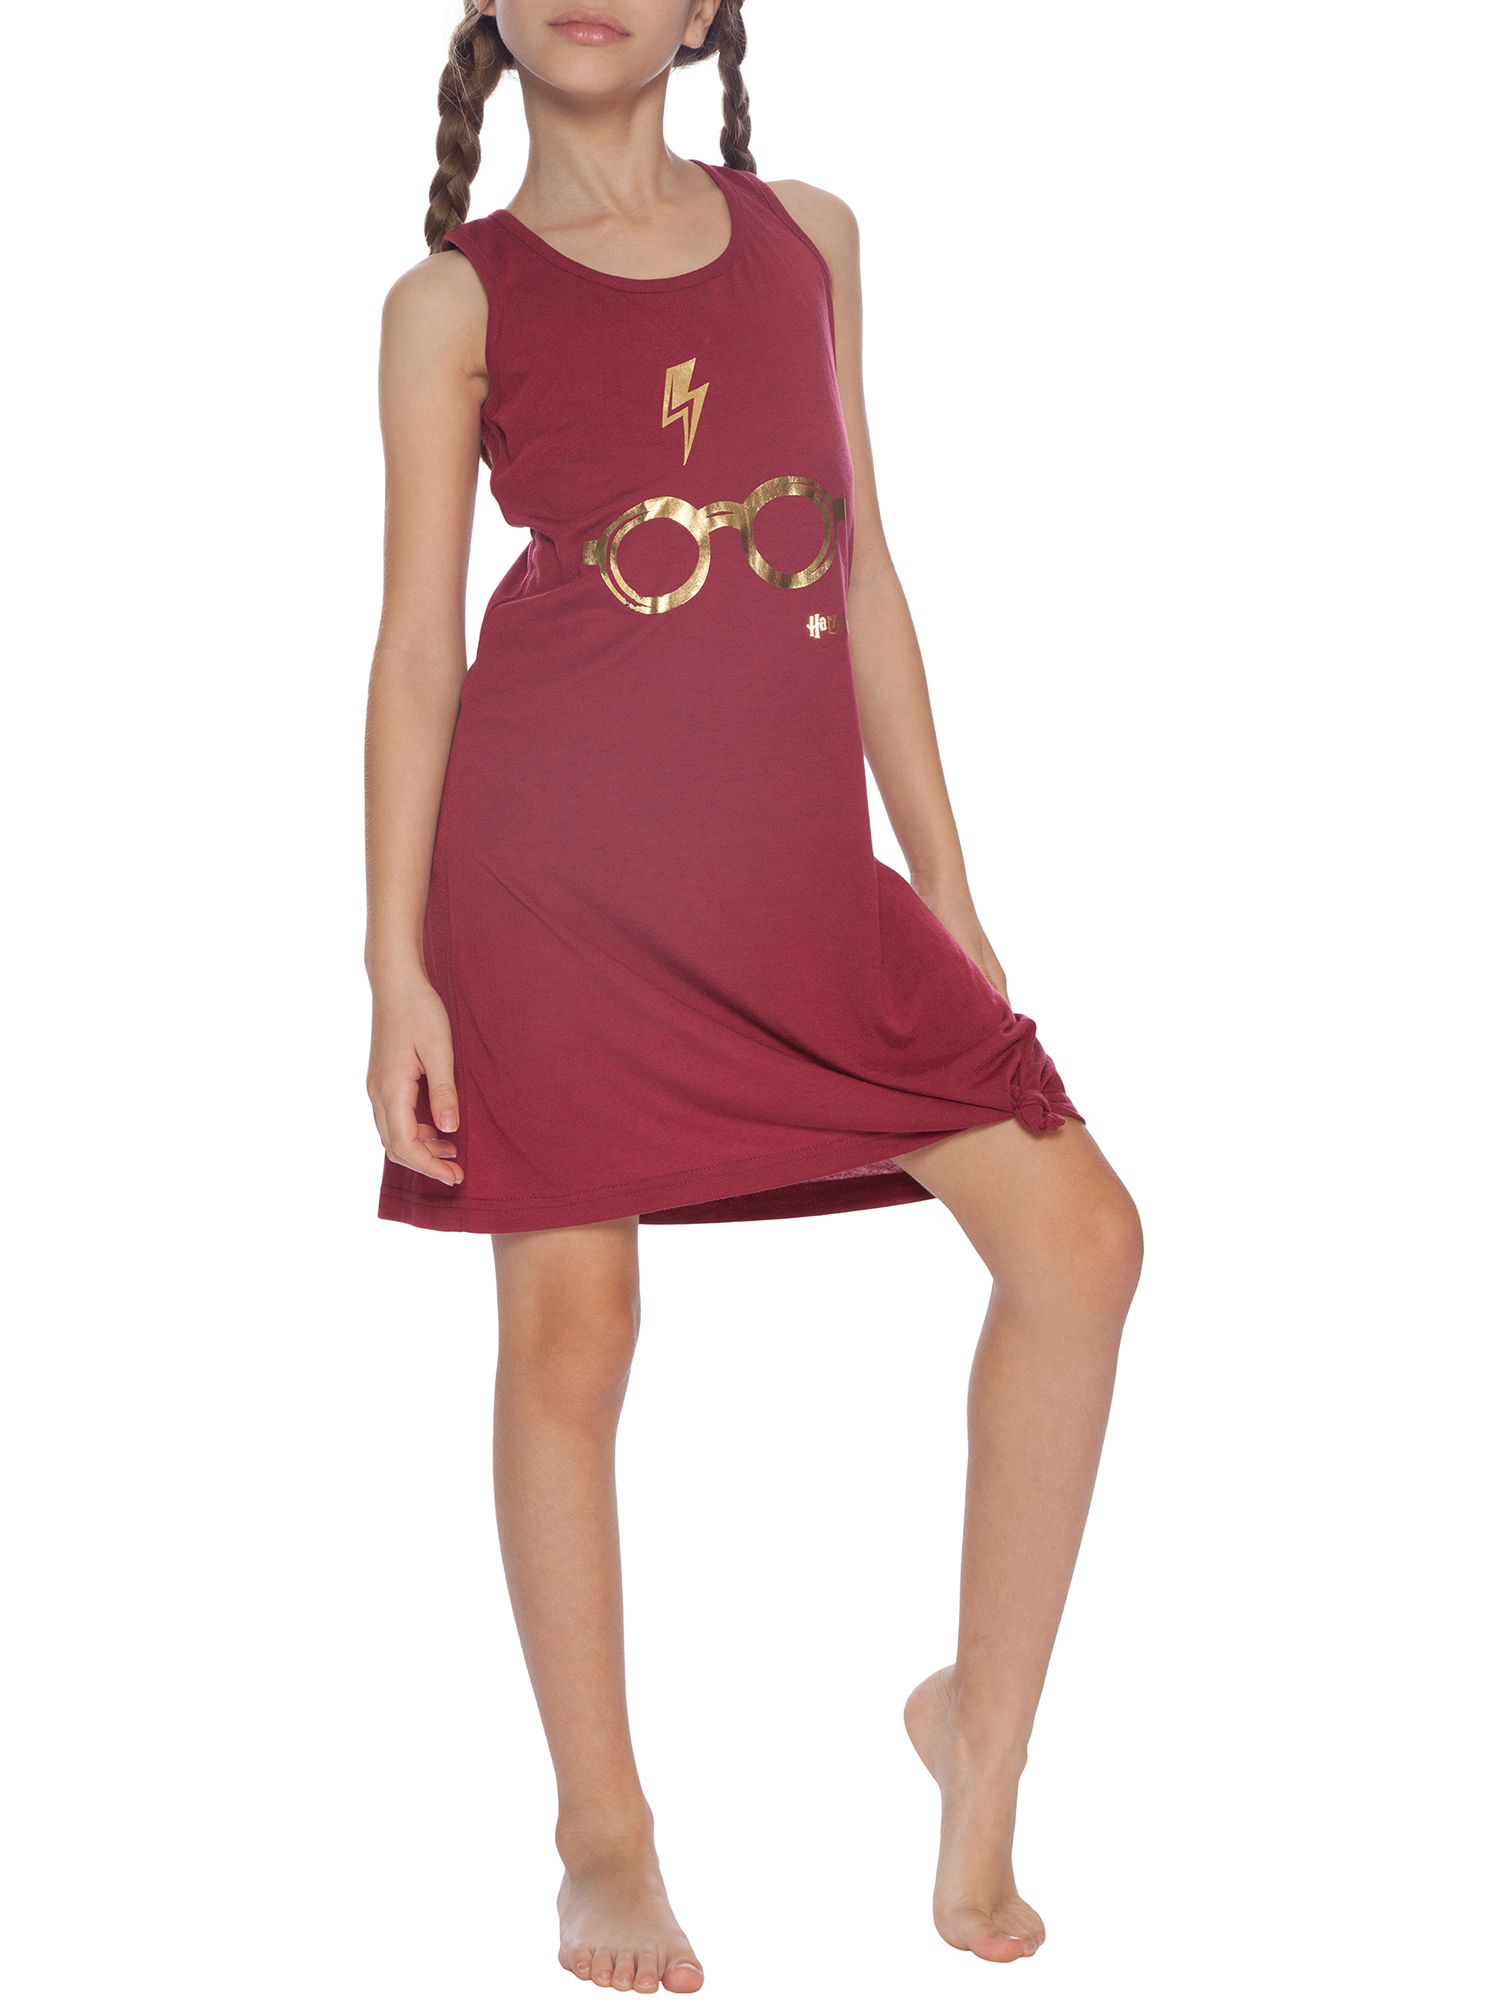 Girls 'Zapped Lightning and Glasses' Racerback Nightgown